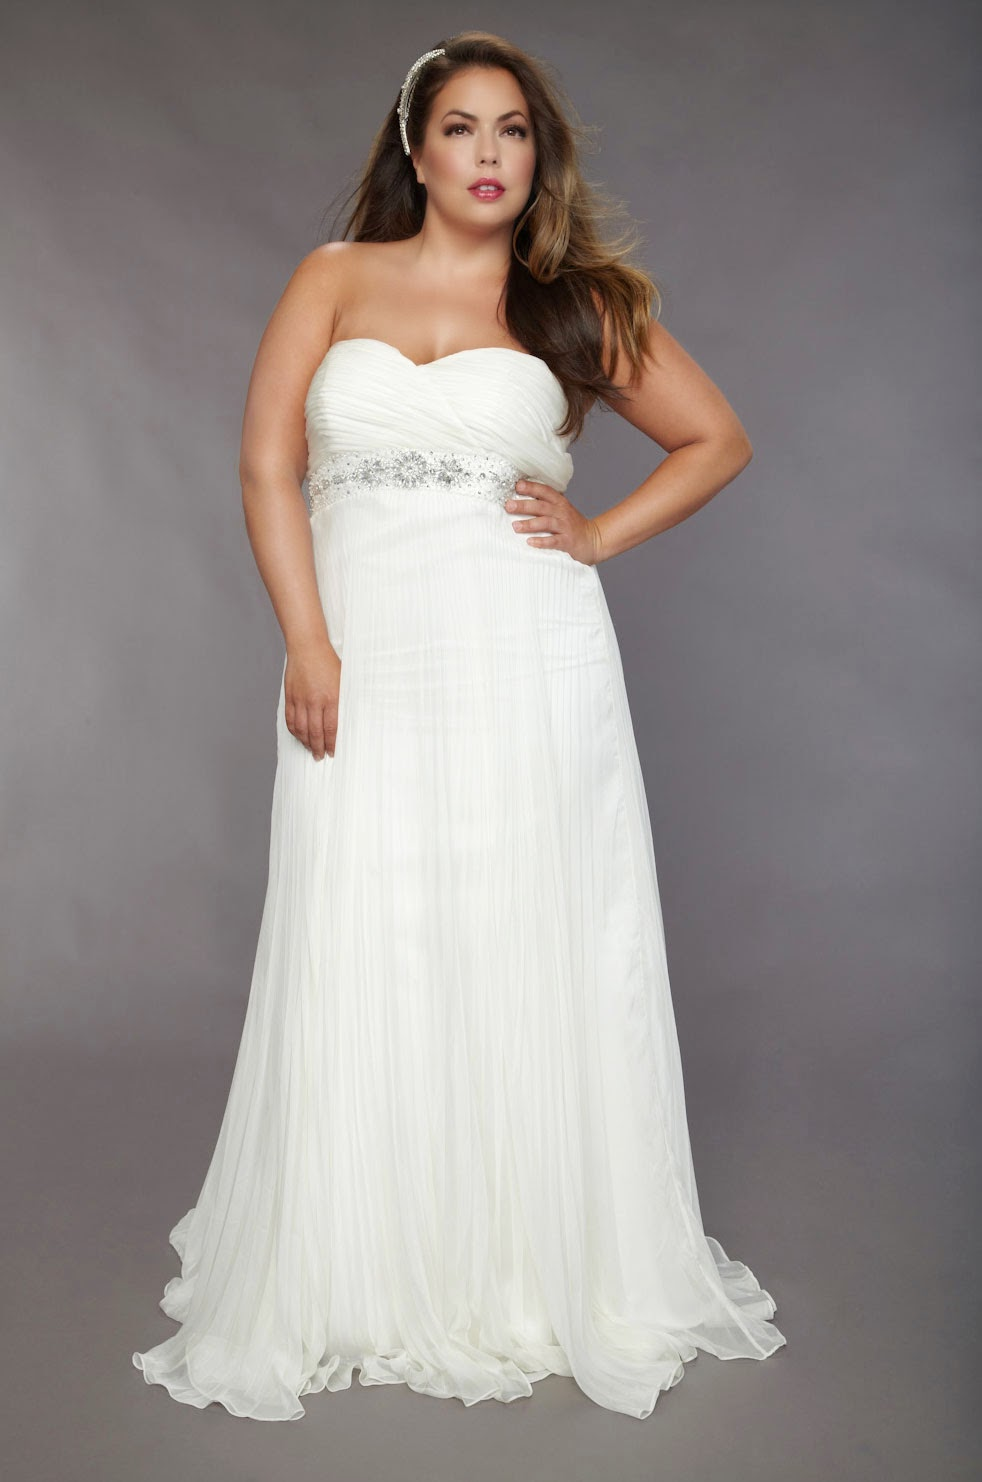 Plus size wedding dresses for older brides second marriage for Best wedding dress styles for plus size brides